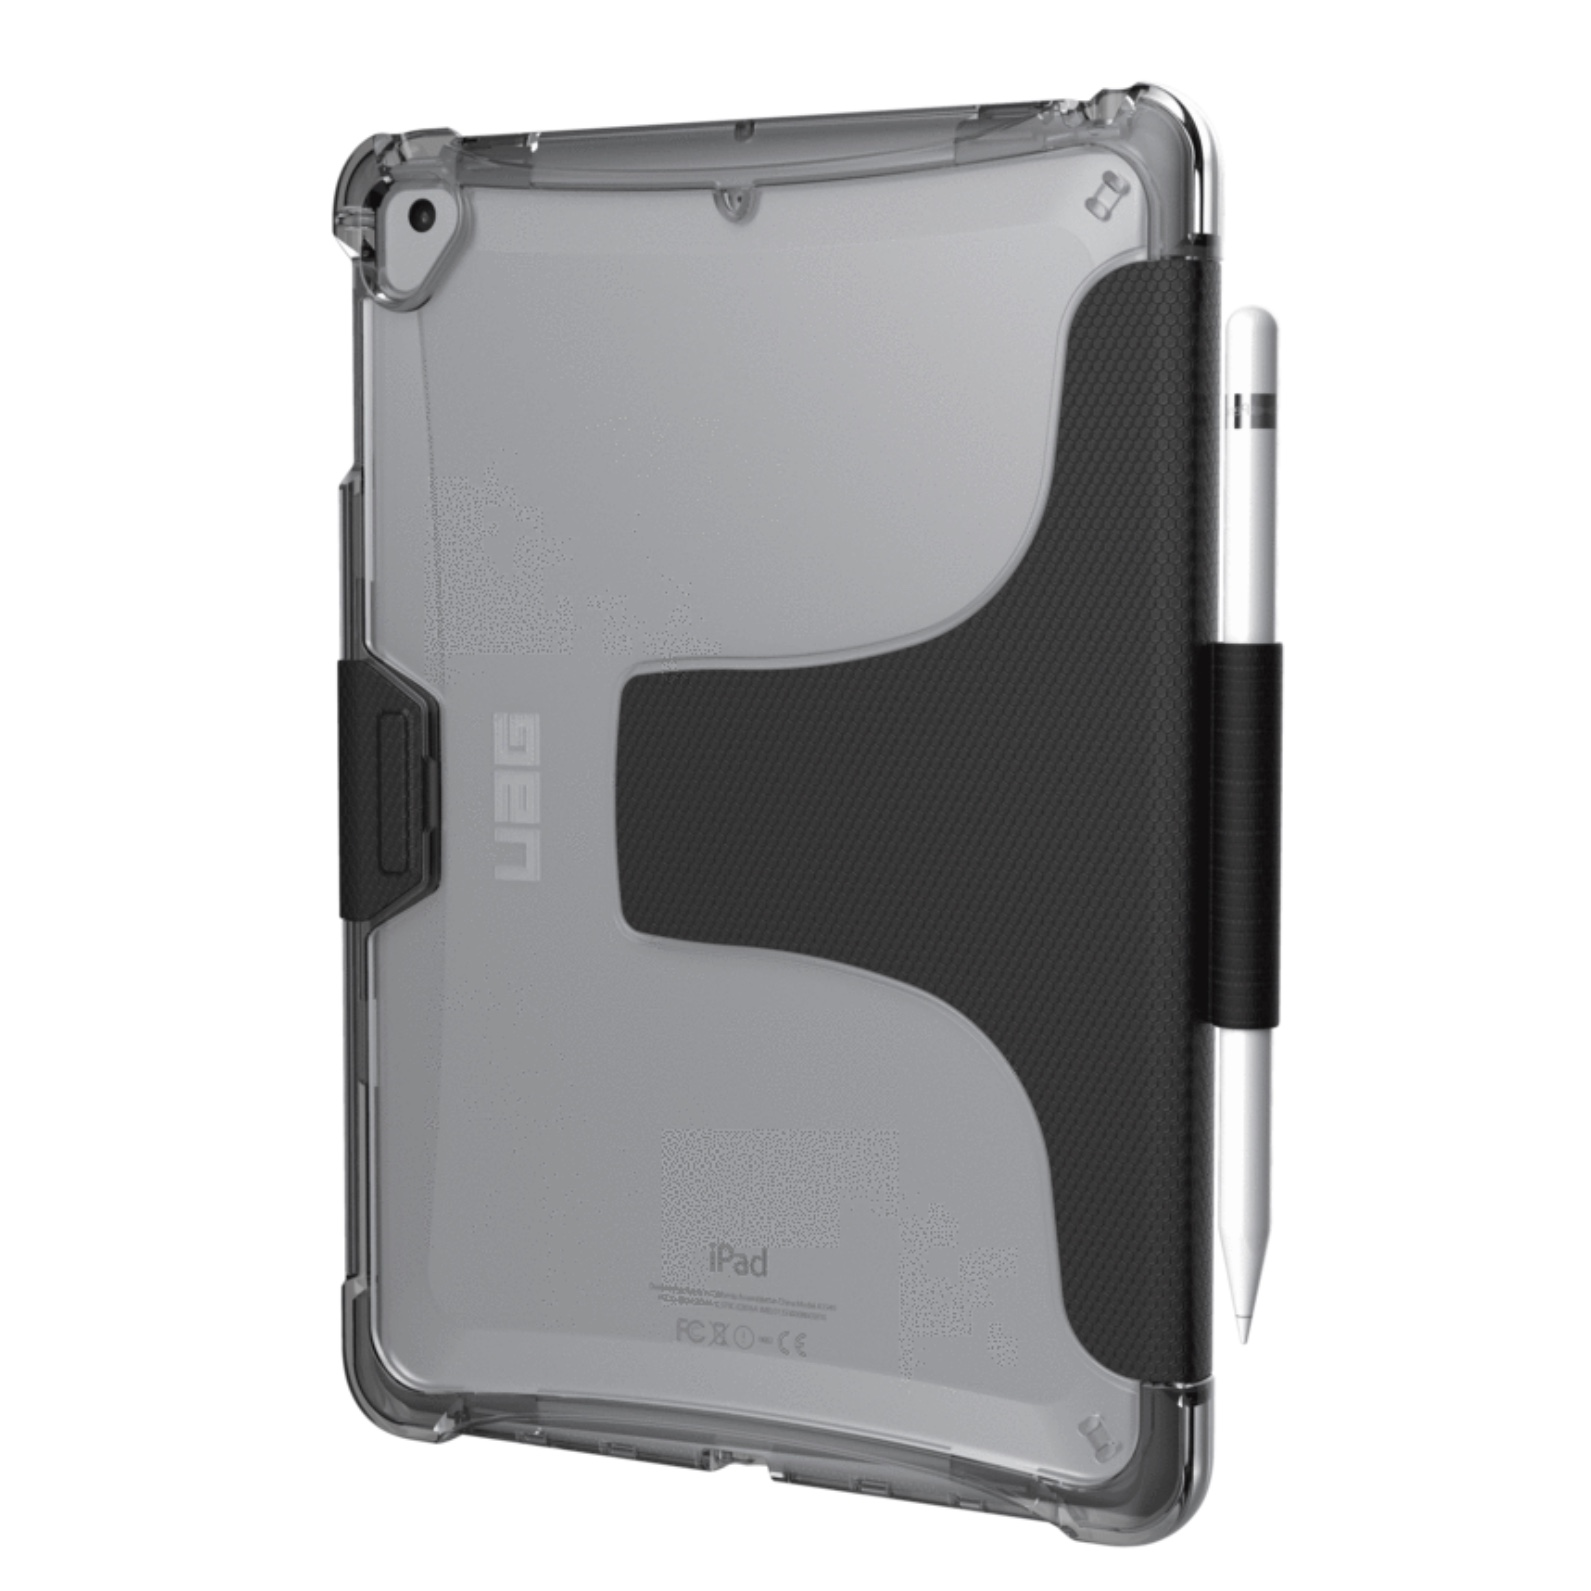 New iPAD 9.7 pouces Coque Folio transparente et support stylet Plyo